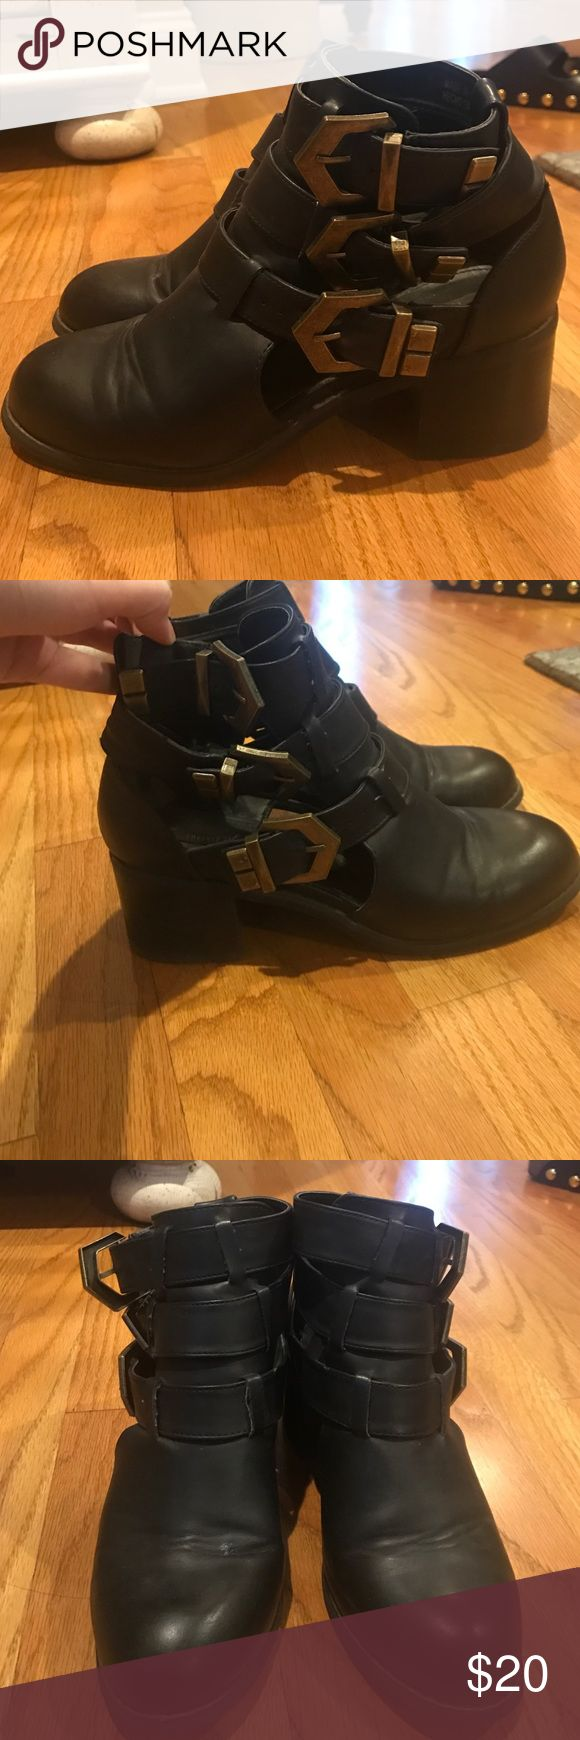 Black Buckle Ankle Boots These boots are in good condition, and are very comfortable. No scuffs or any damage, but they are broken in. Forever 21 Shoes Ankle Boots & Booties